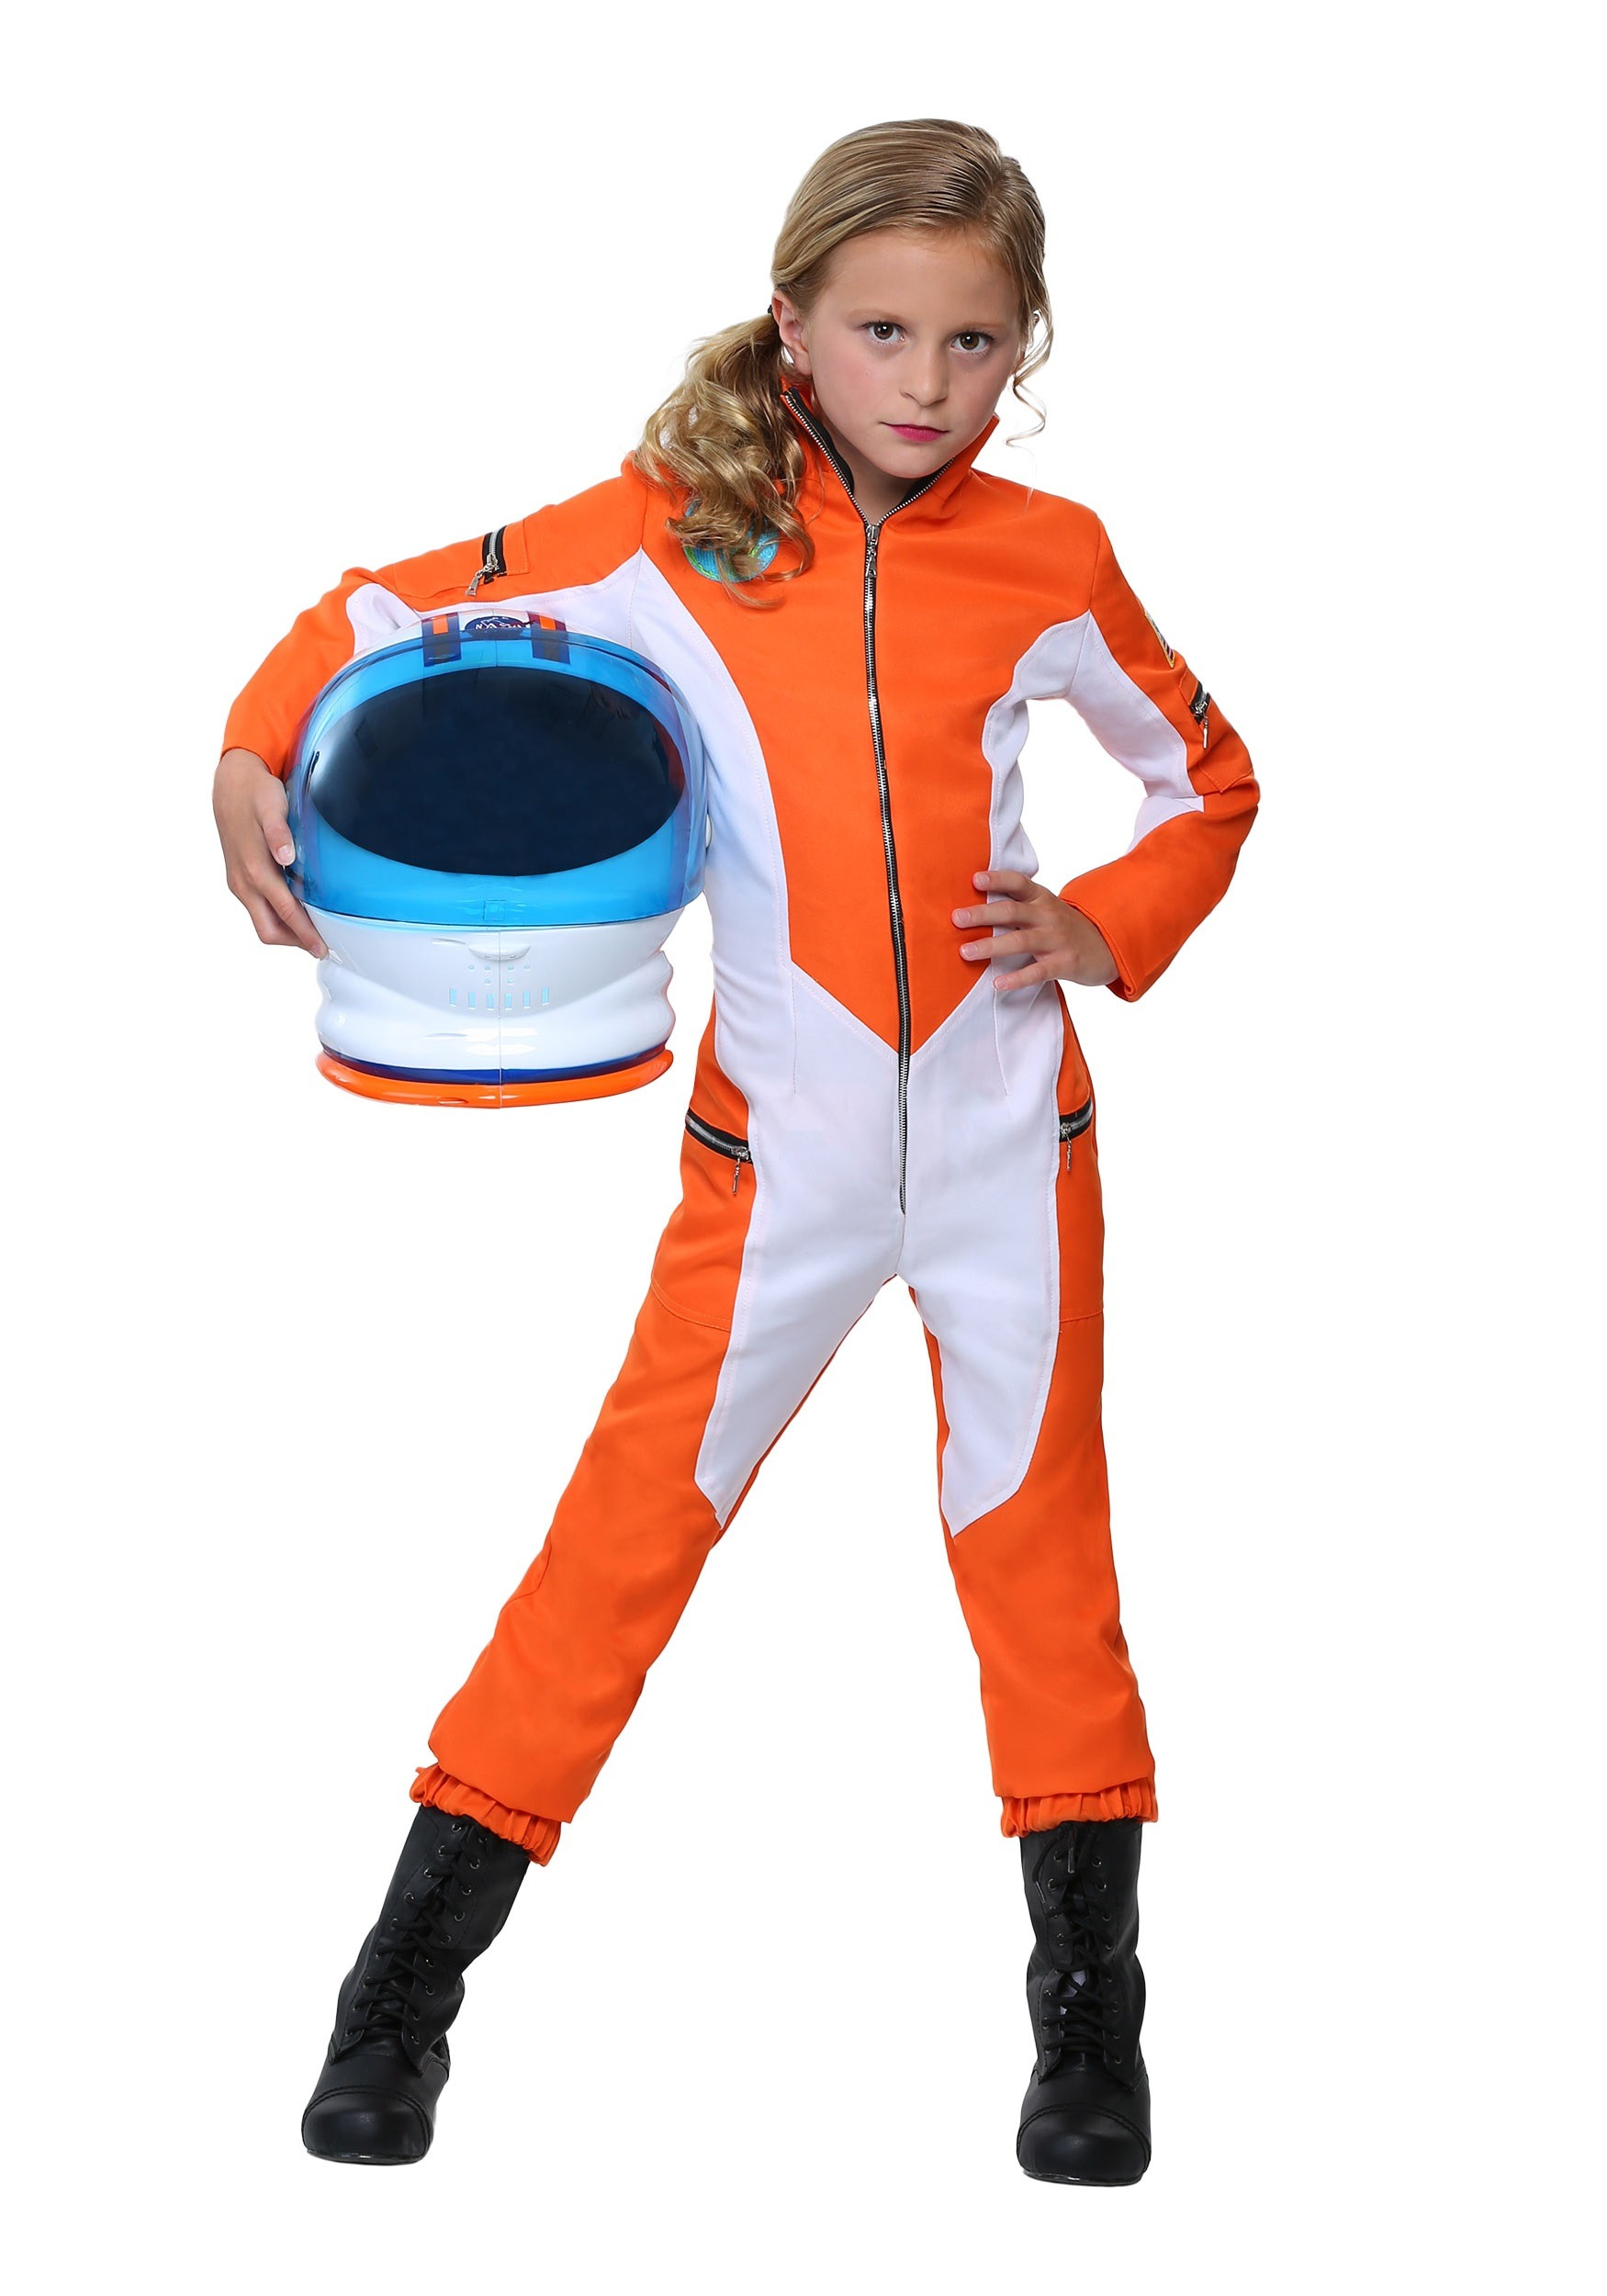 Astronaut space bootcovers for kids are imported. Essential equipment! Soft-sided bootcovers have logos and patches; intended to be worn over shoes (and note they're sized to coordinate with the costume for easy ordering).